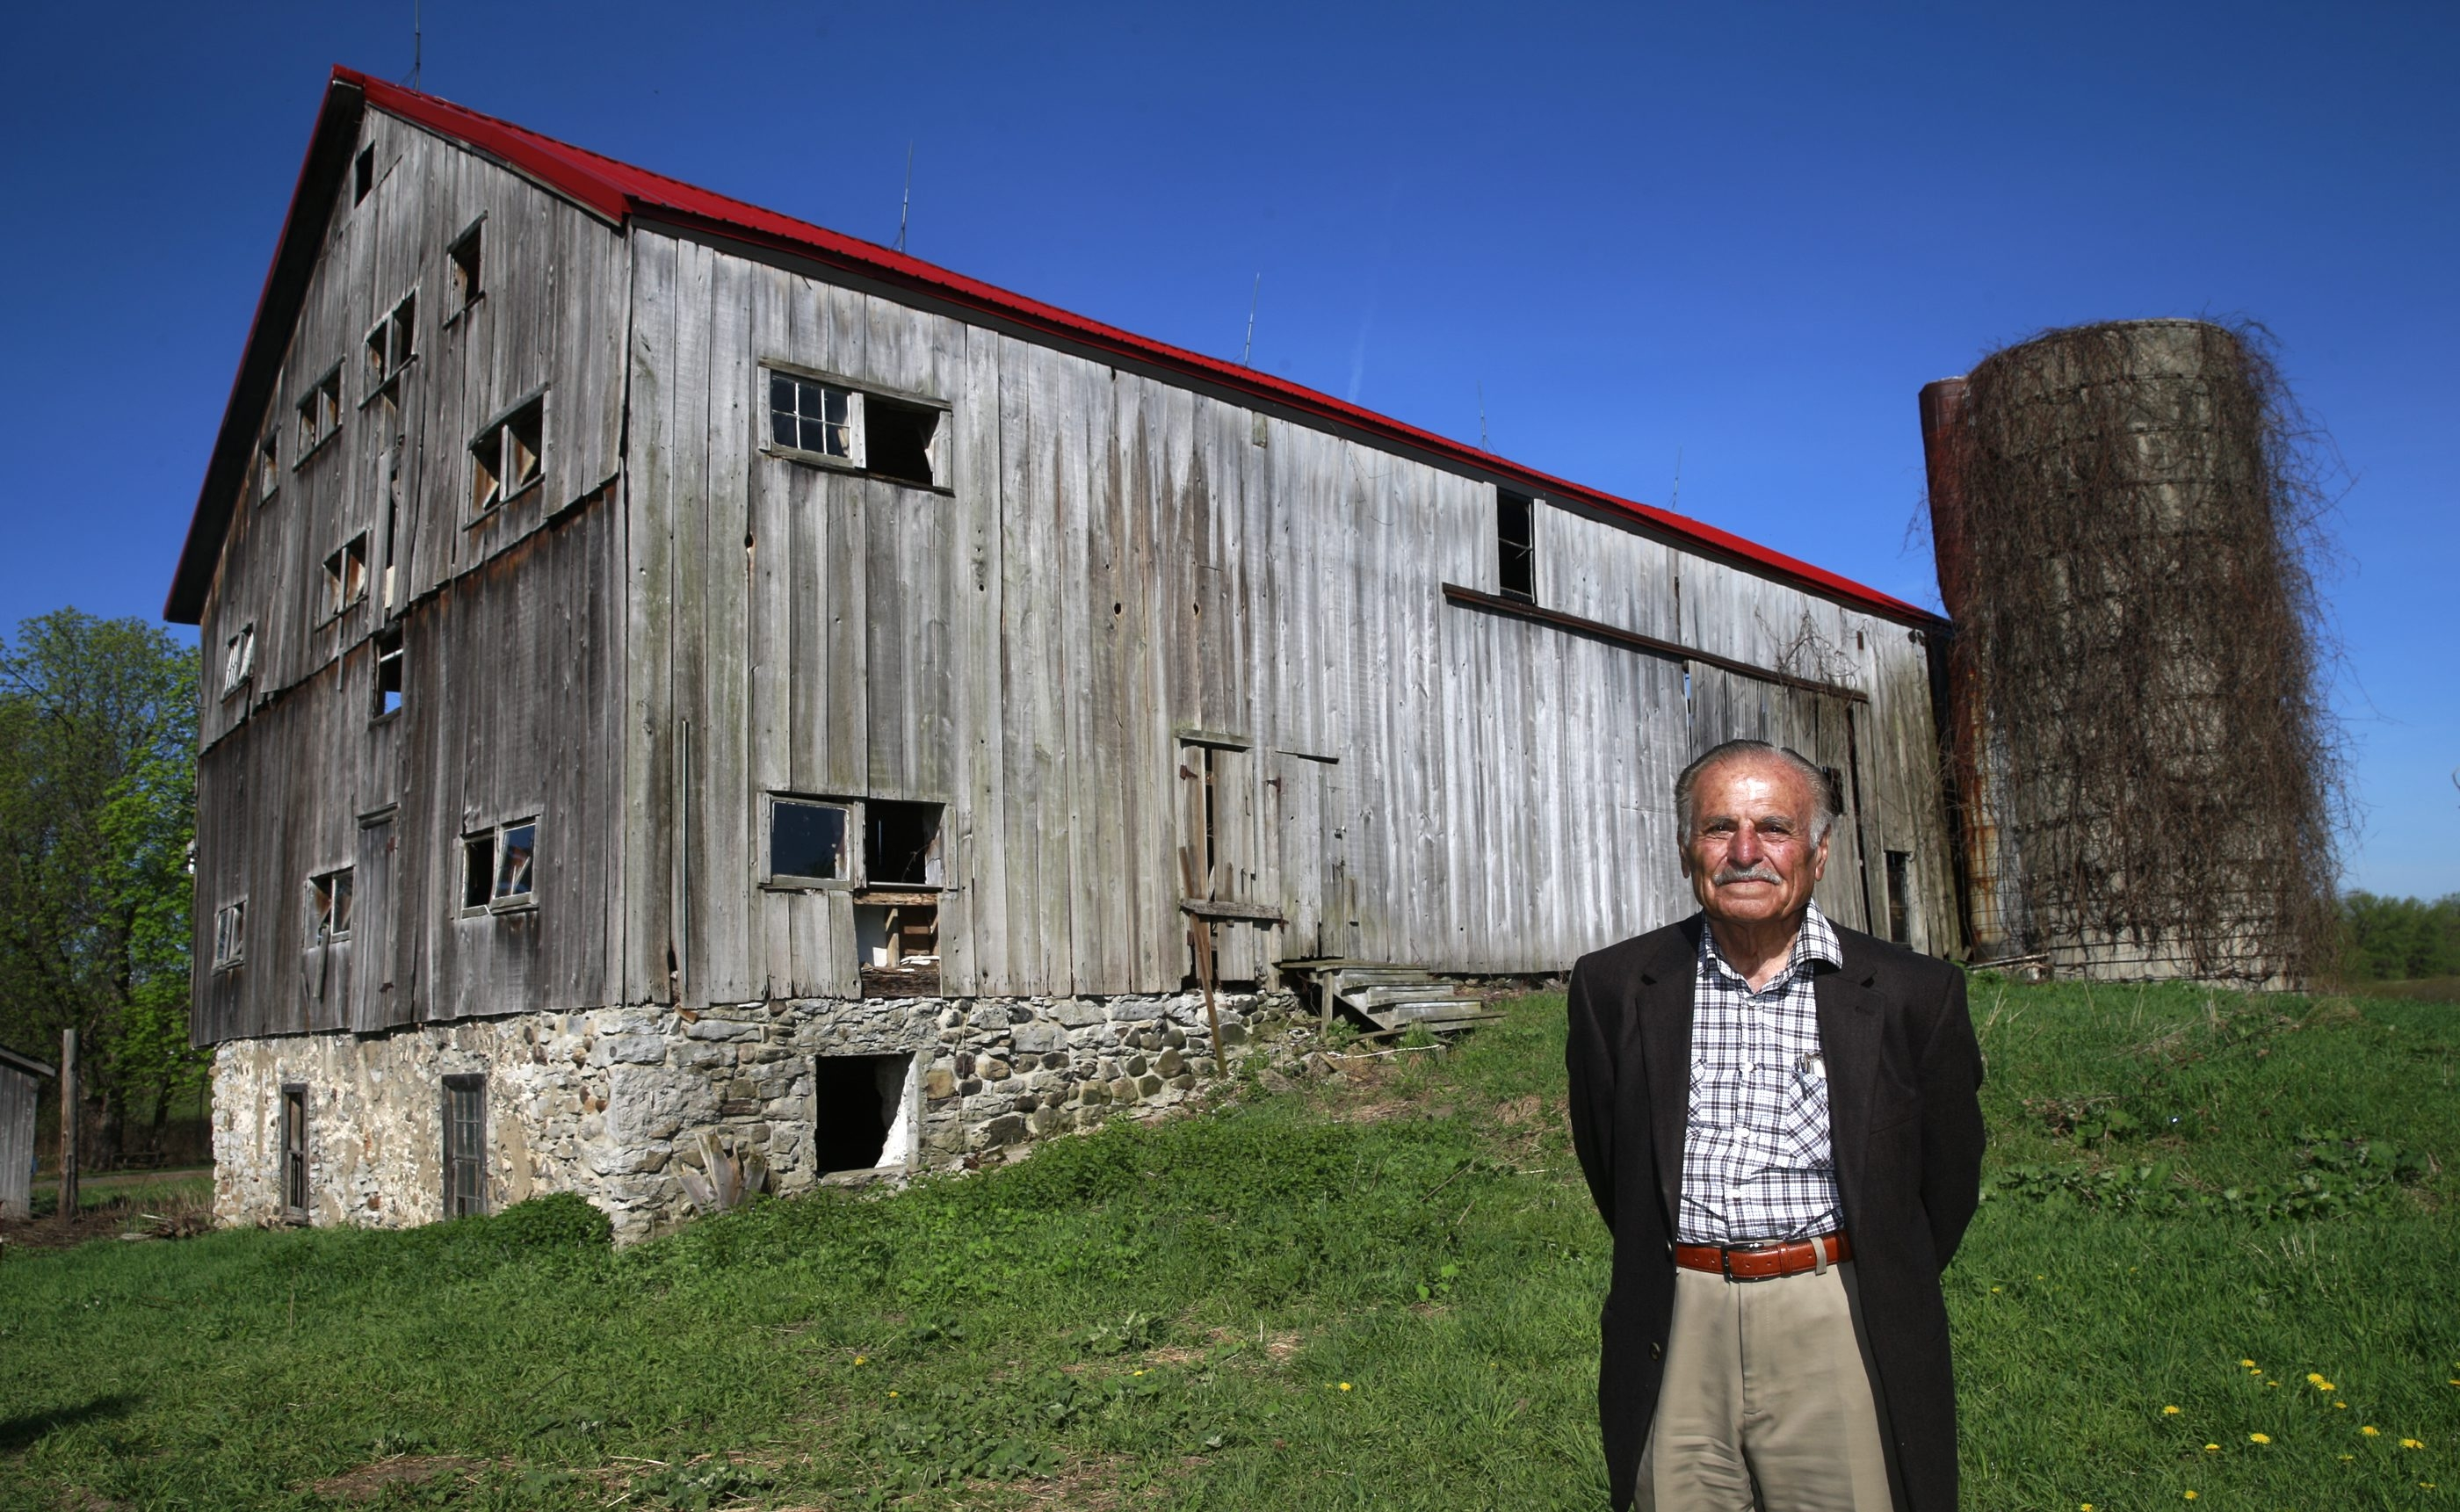 Dr. Ismet Hallac stands before his 19th-century barn, a relic from German Mennonite settlers in Clarence, last week. The surrounding land will become a housing development. Hallac wants to sell the barn to preservationists. See a photo gallery at BuffaloNews.com.